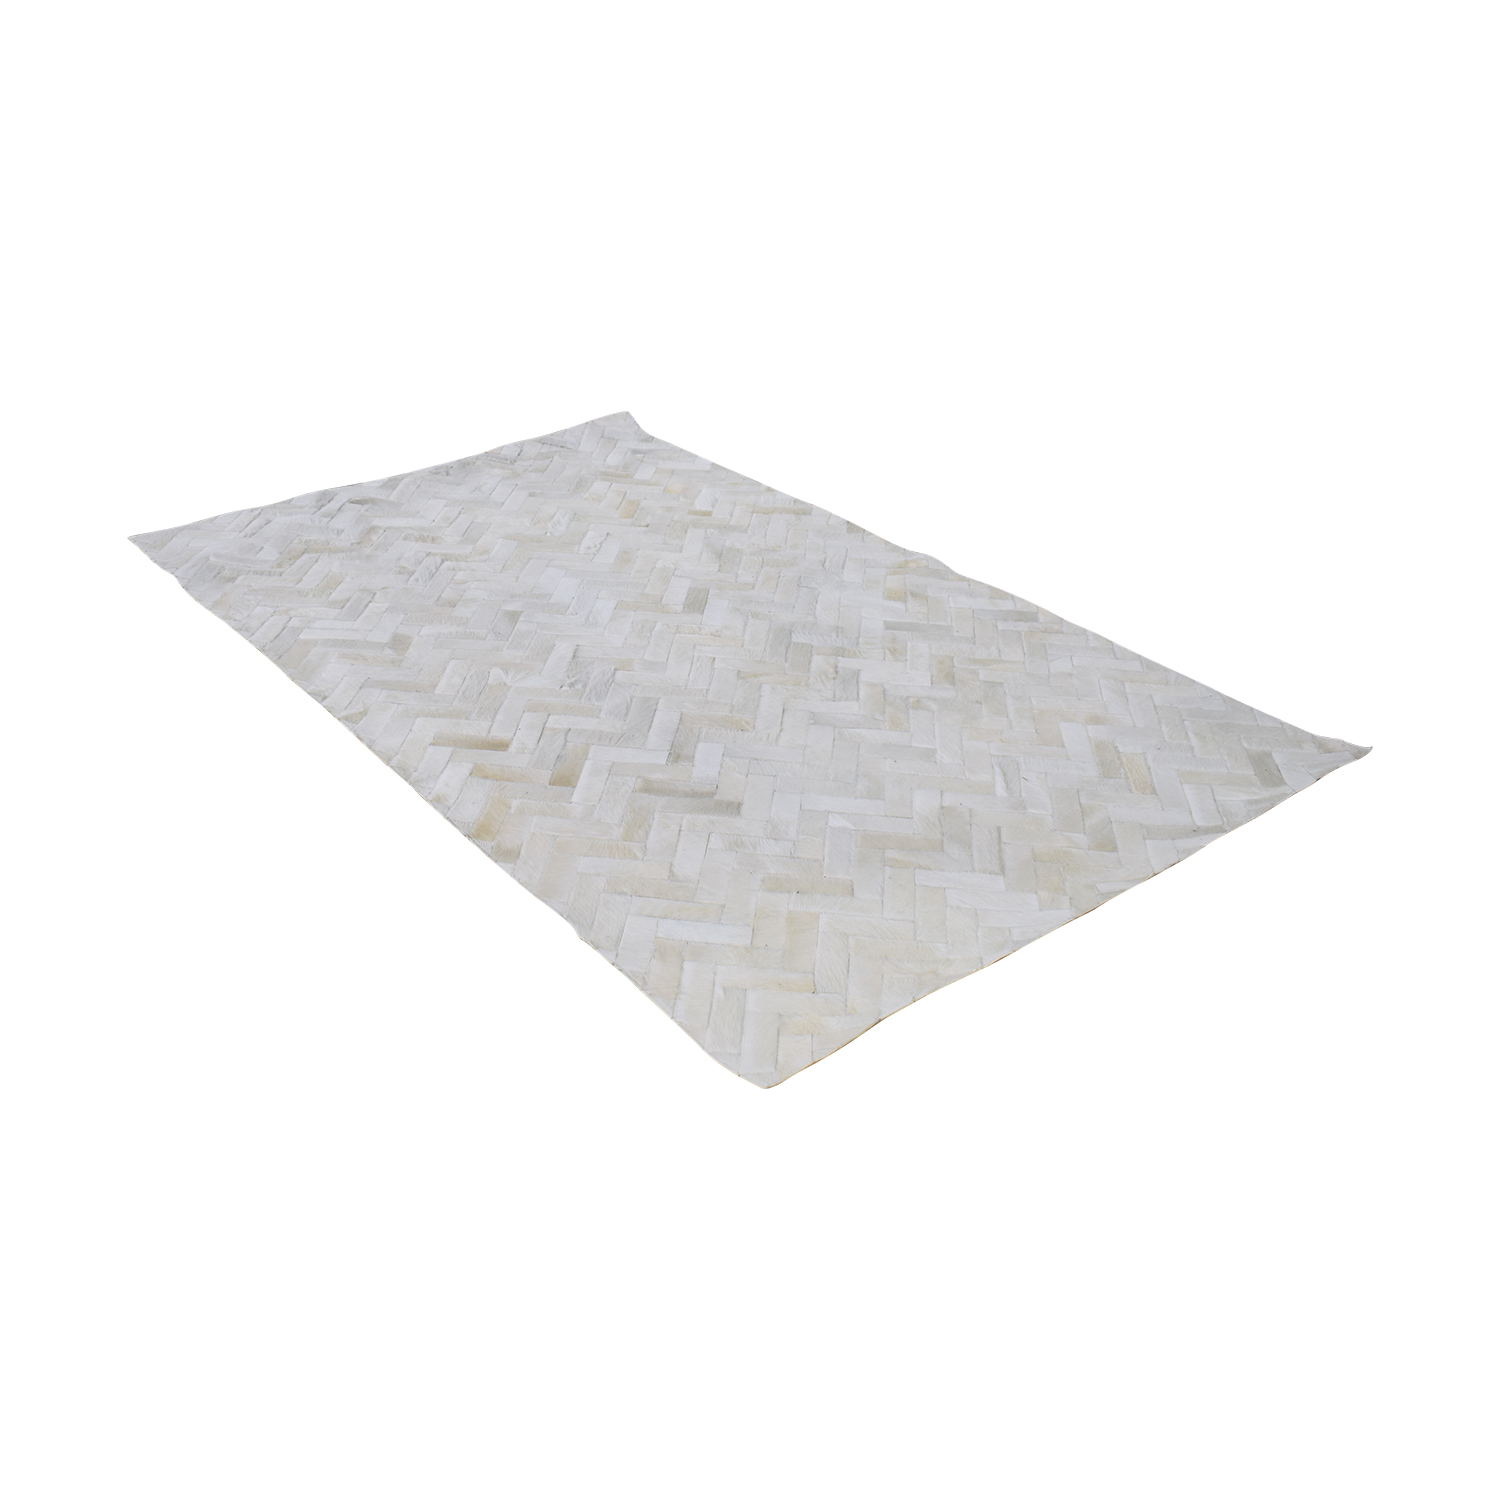 West Elm West Elm Pieced + Patched Cowhide Rug white